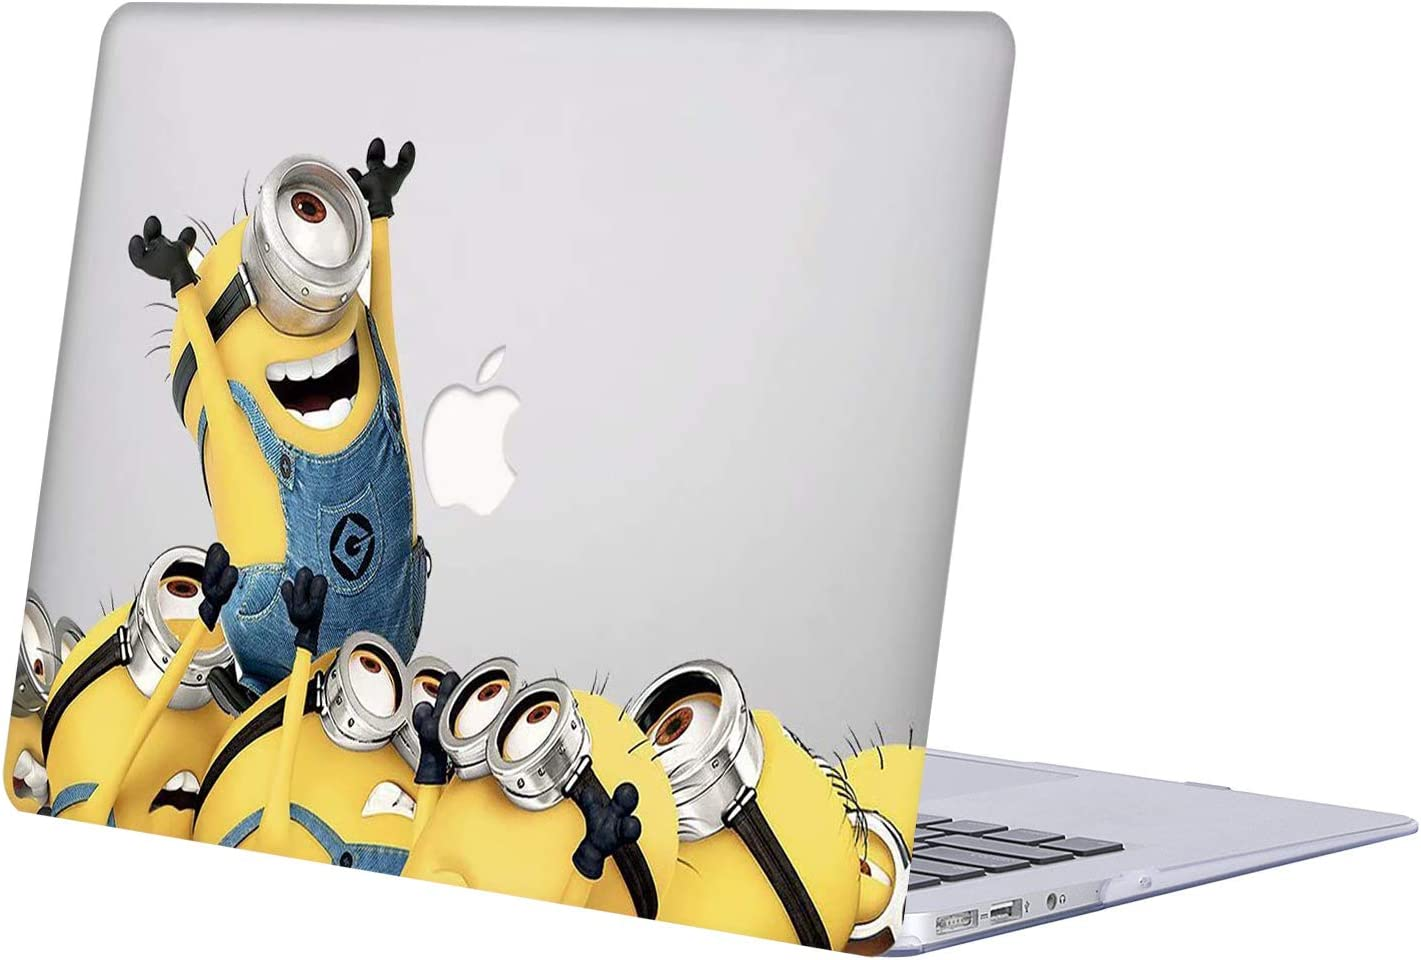 MacBook 12 inch Case, Model A1534 with Retina Display Newest Version 2017, AJYX Anime Series Plastic Hard Case Laptop Shell Cover - JR158 Minions